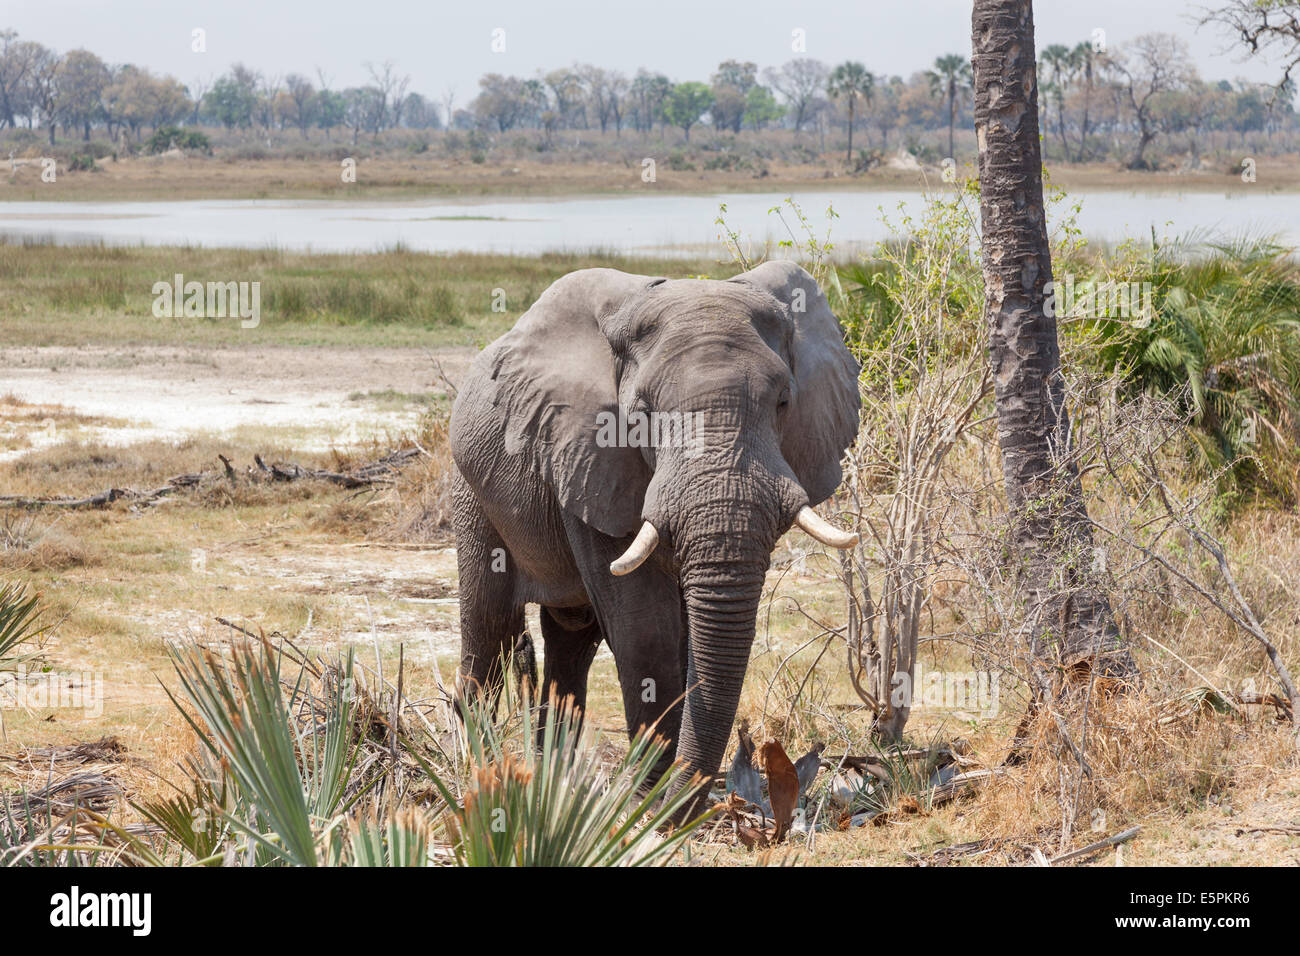 Afican bush elephant with impressive tusks, standing near water in the Okavango Delta, Botswana - Stock Image